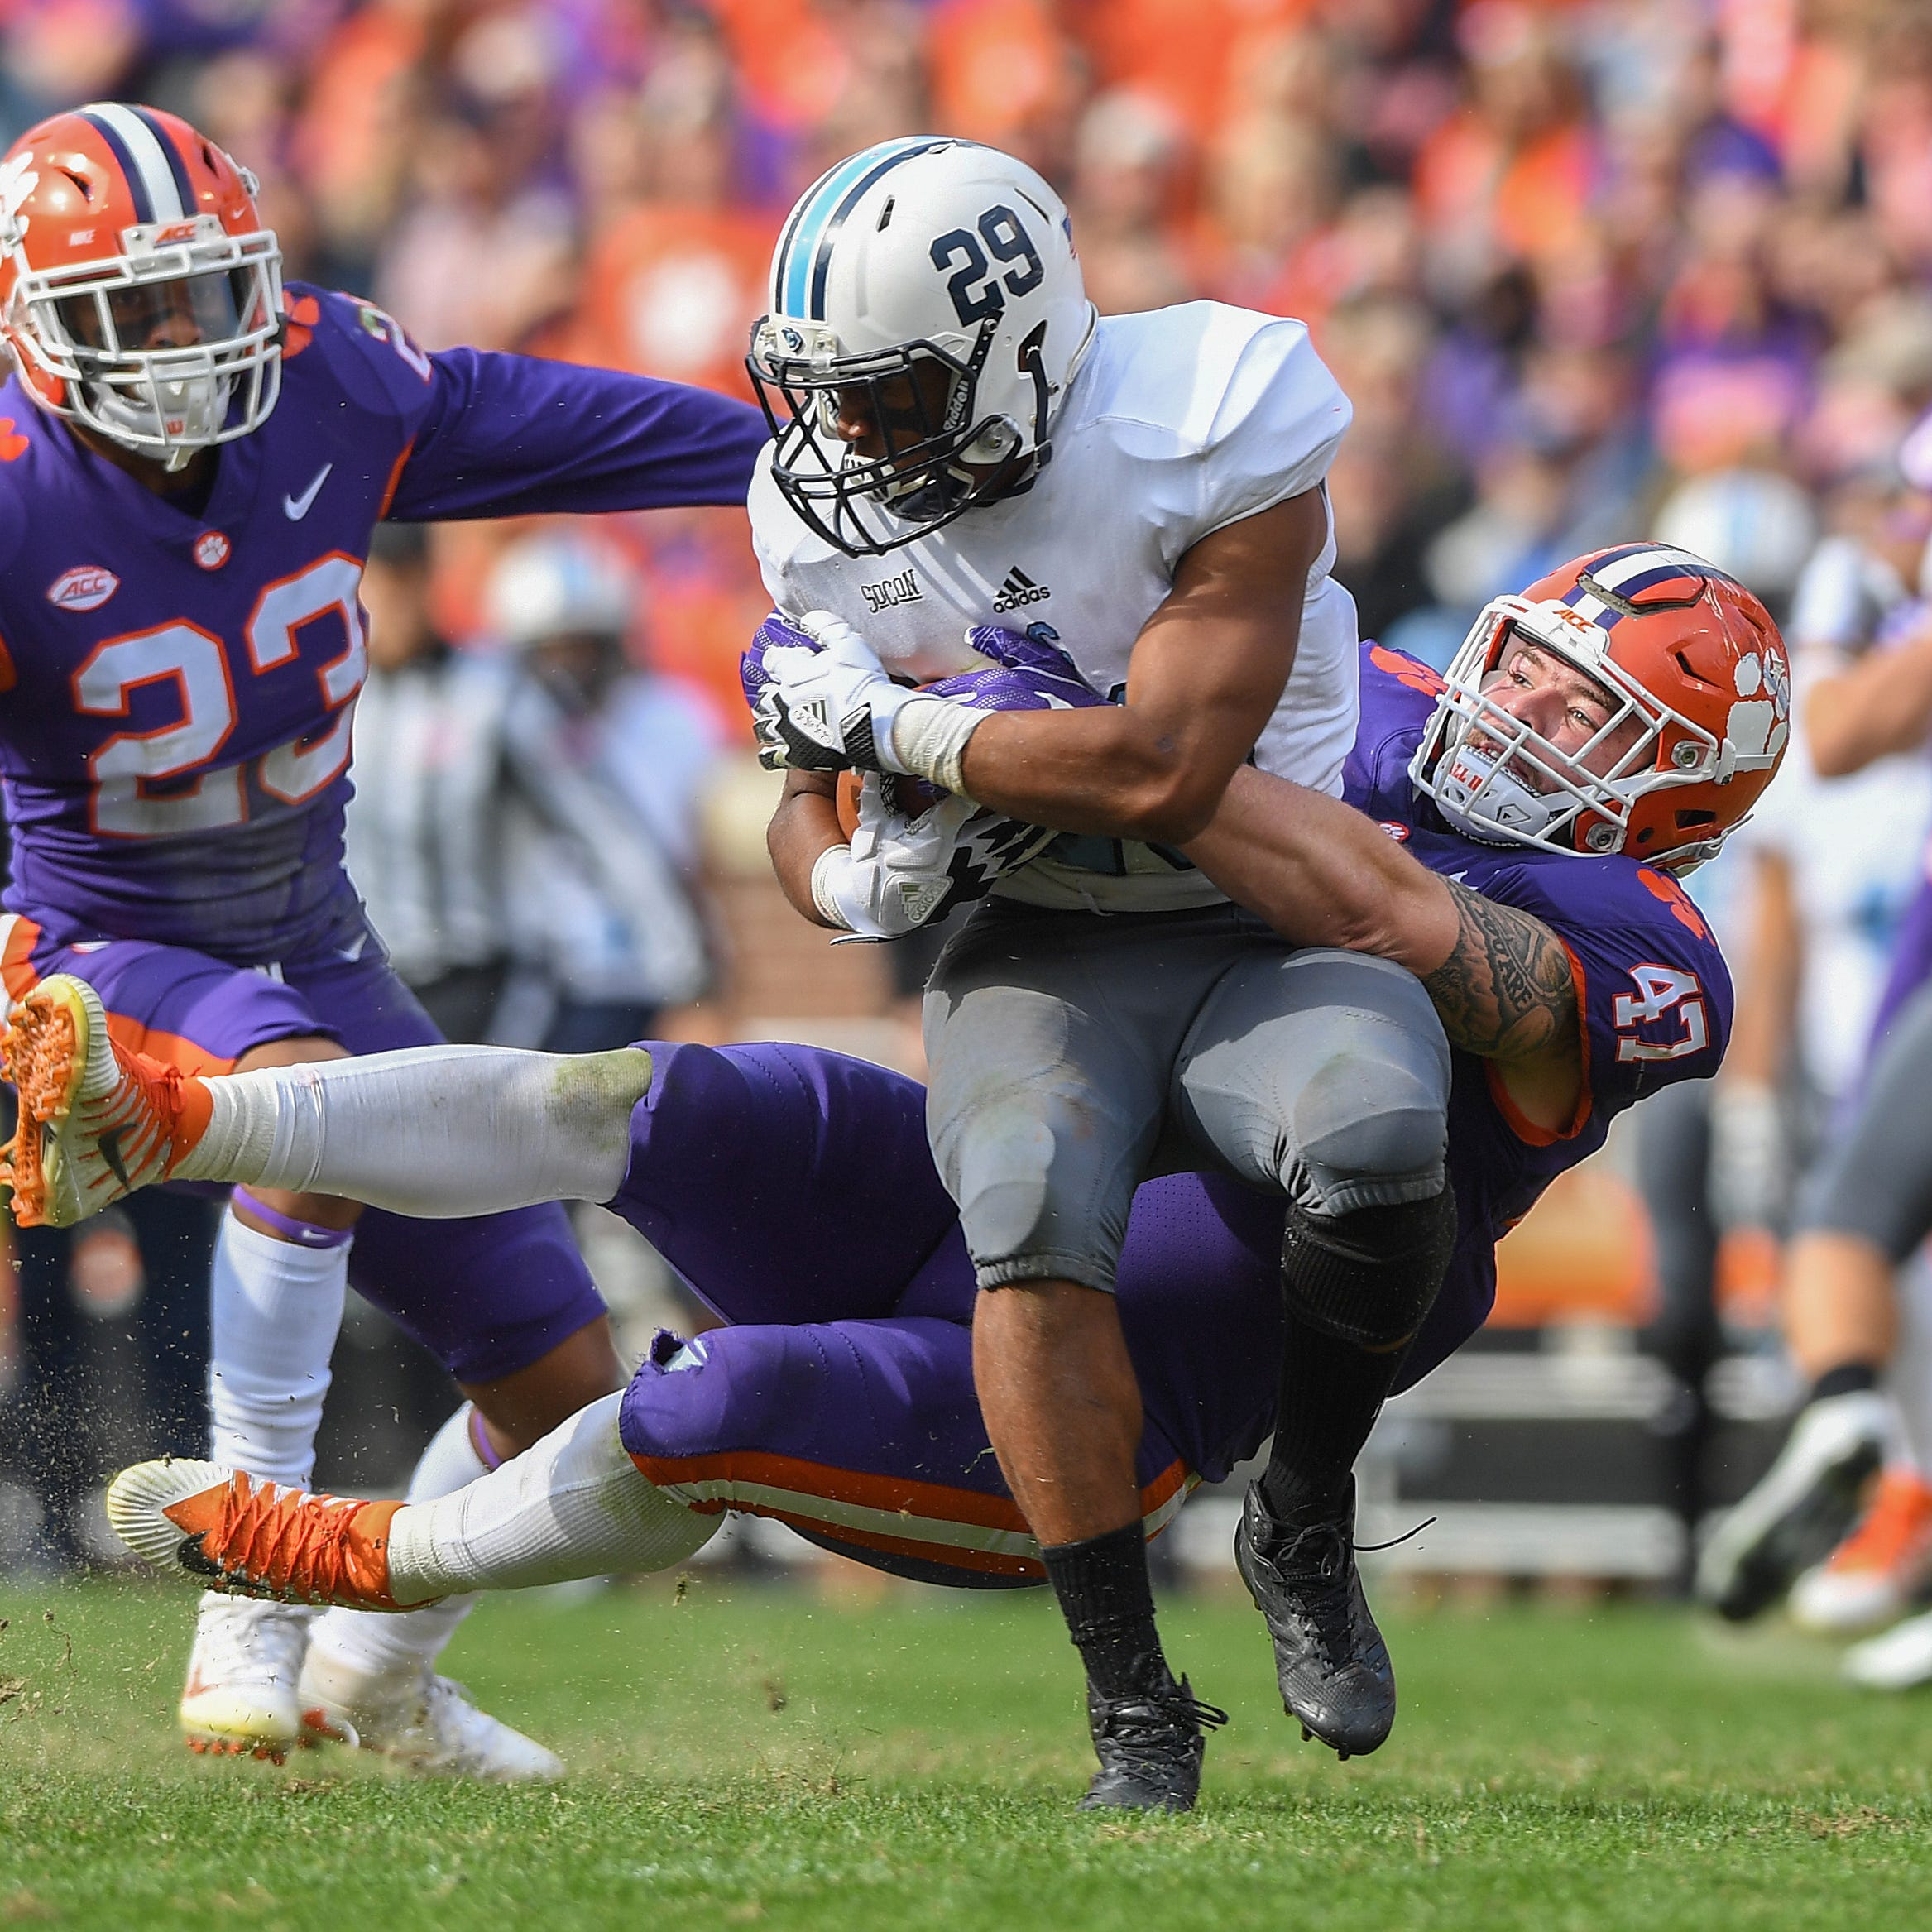 Finding new linebackers will be major focus of Clemson's rebuilding effort on defense